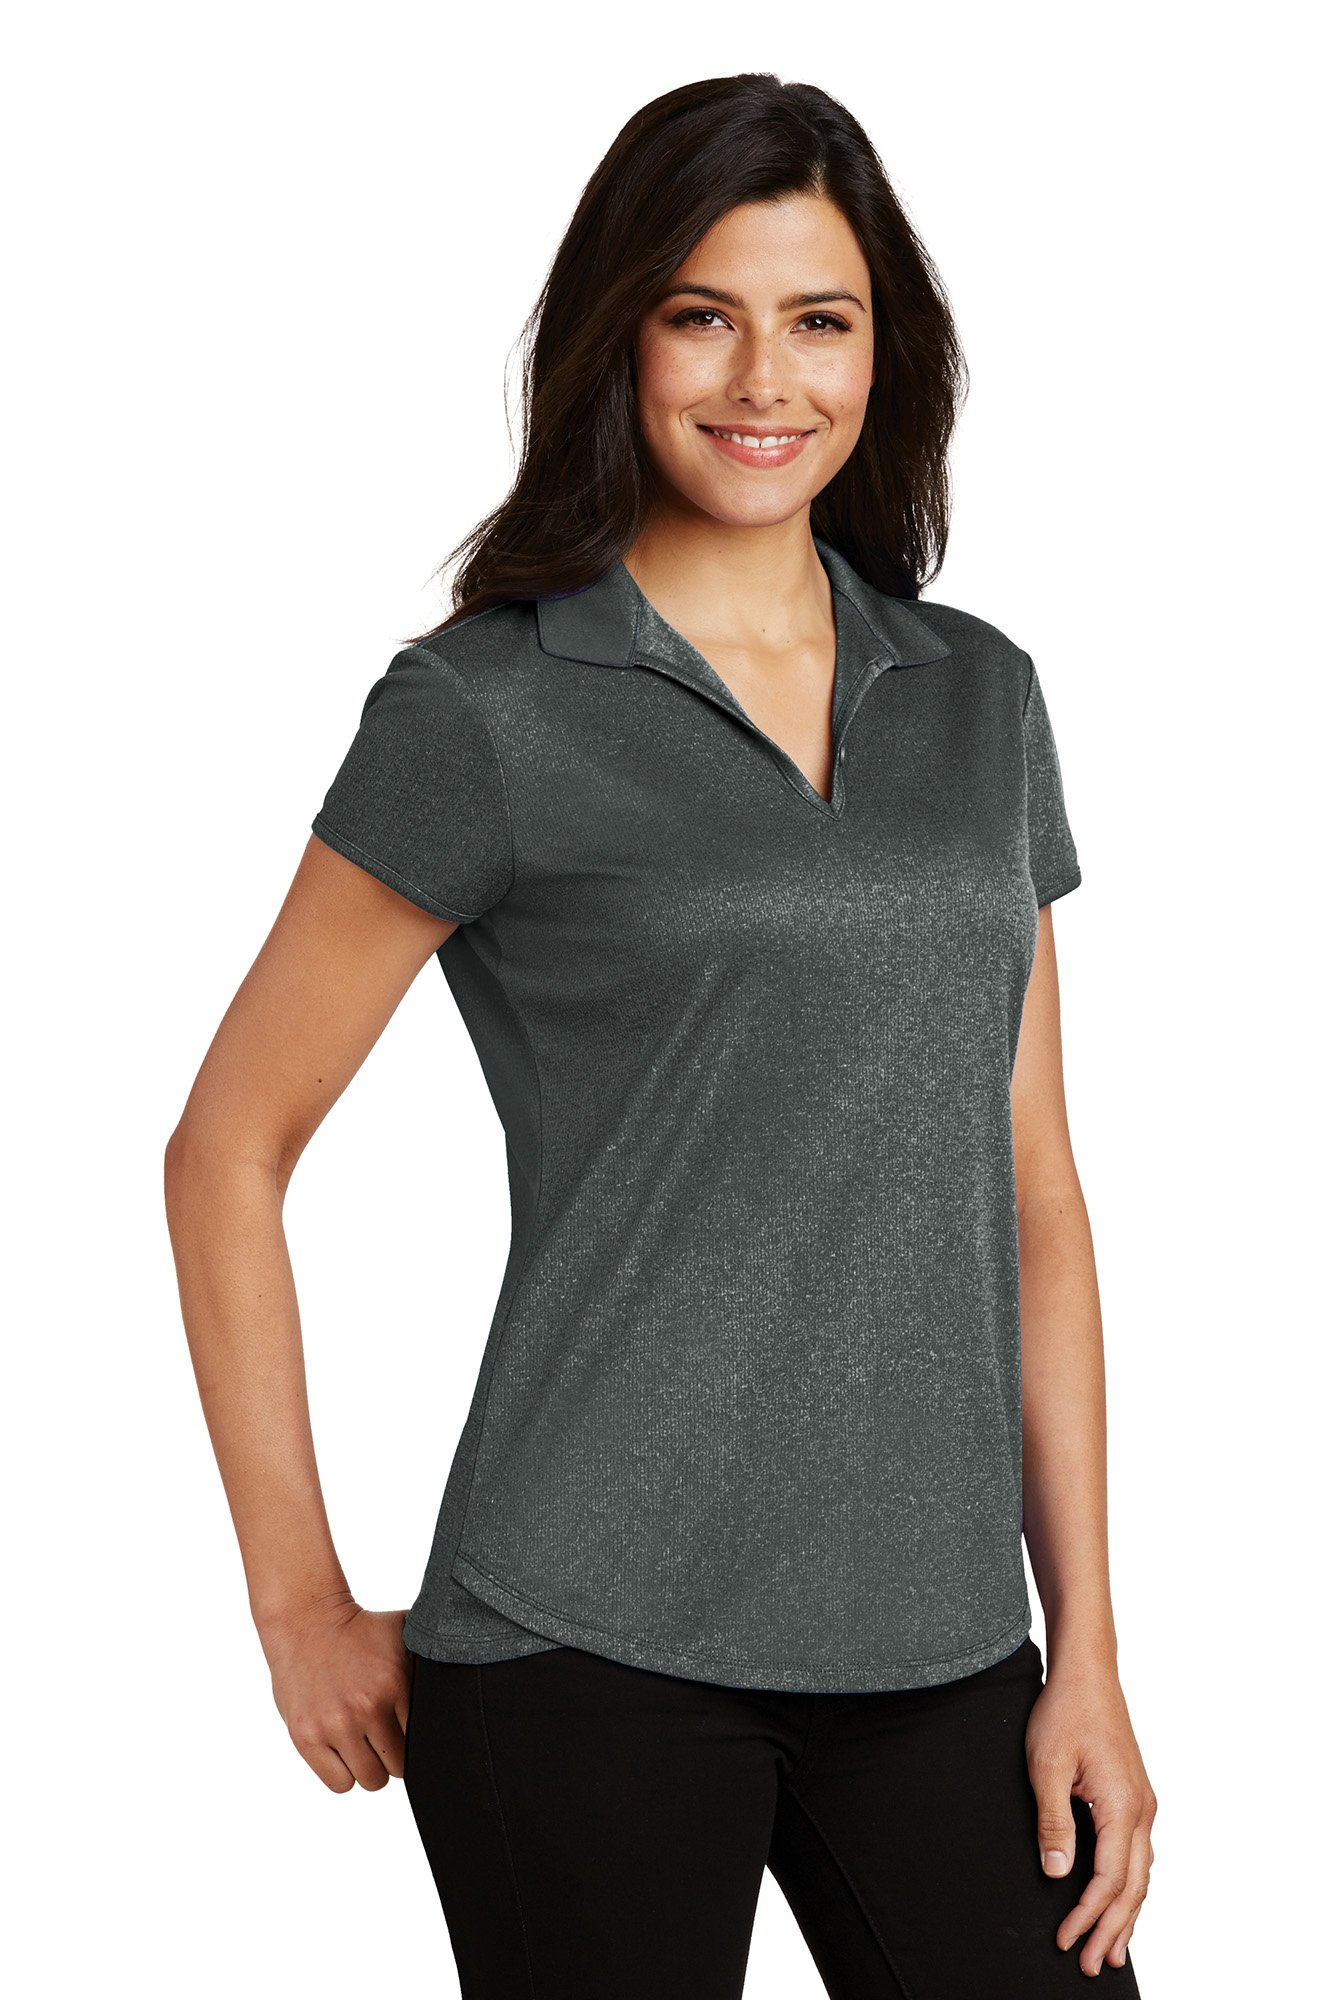 Opna Women's Ladies Moisture Wicking Athletic Golf Polo Shirts Tops & Tees by Opna (Image #2)